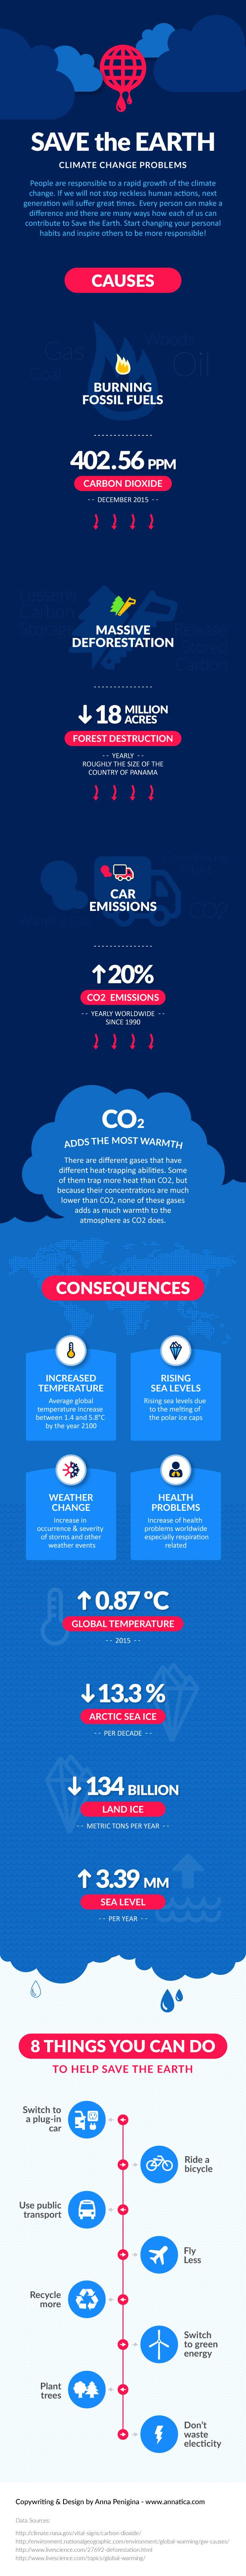 save earth essay save water save earth essay save trees save the  top ideas about save the earth environment global warming climate change save the earth infographic